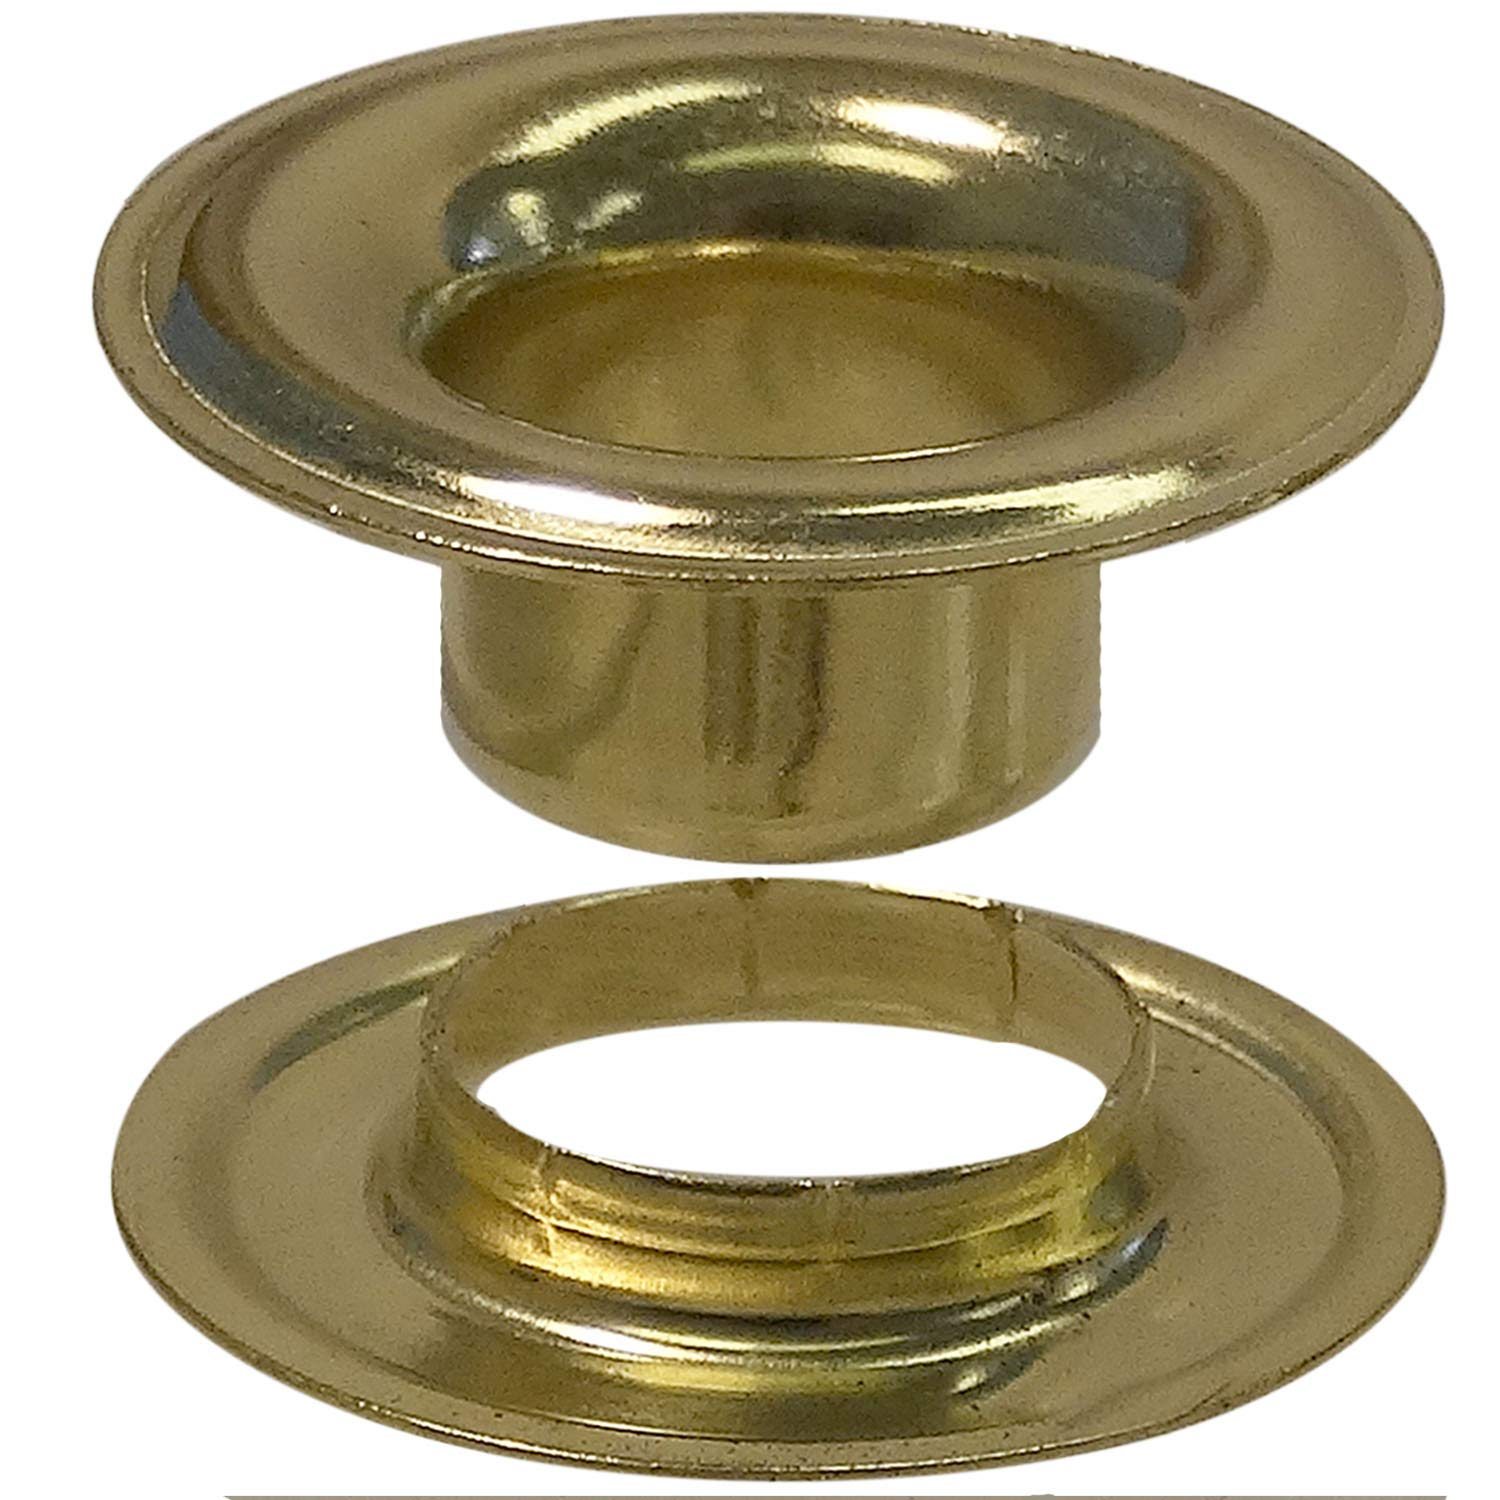 Stimpson Sheet Metal Grommet and Neck Washer Brass Durable, Reliable, Heavy-Duty #1 Set (720 Piece of Each)